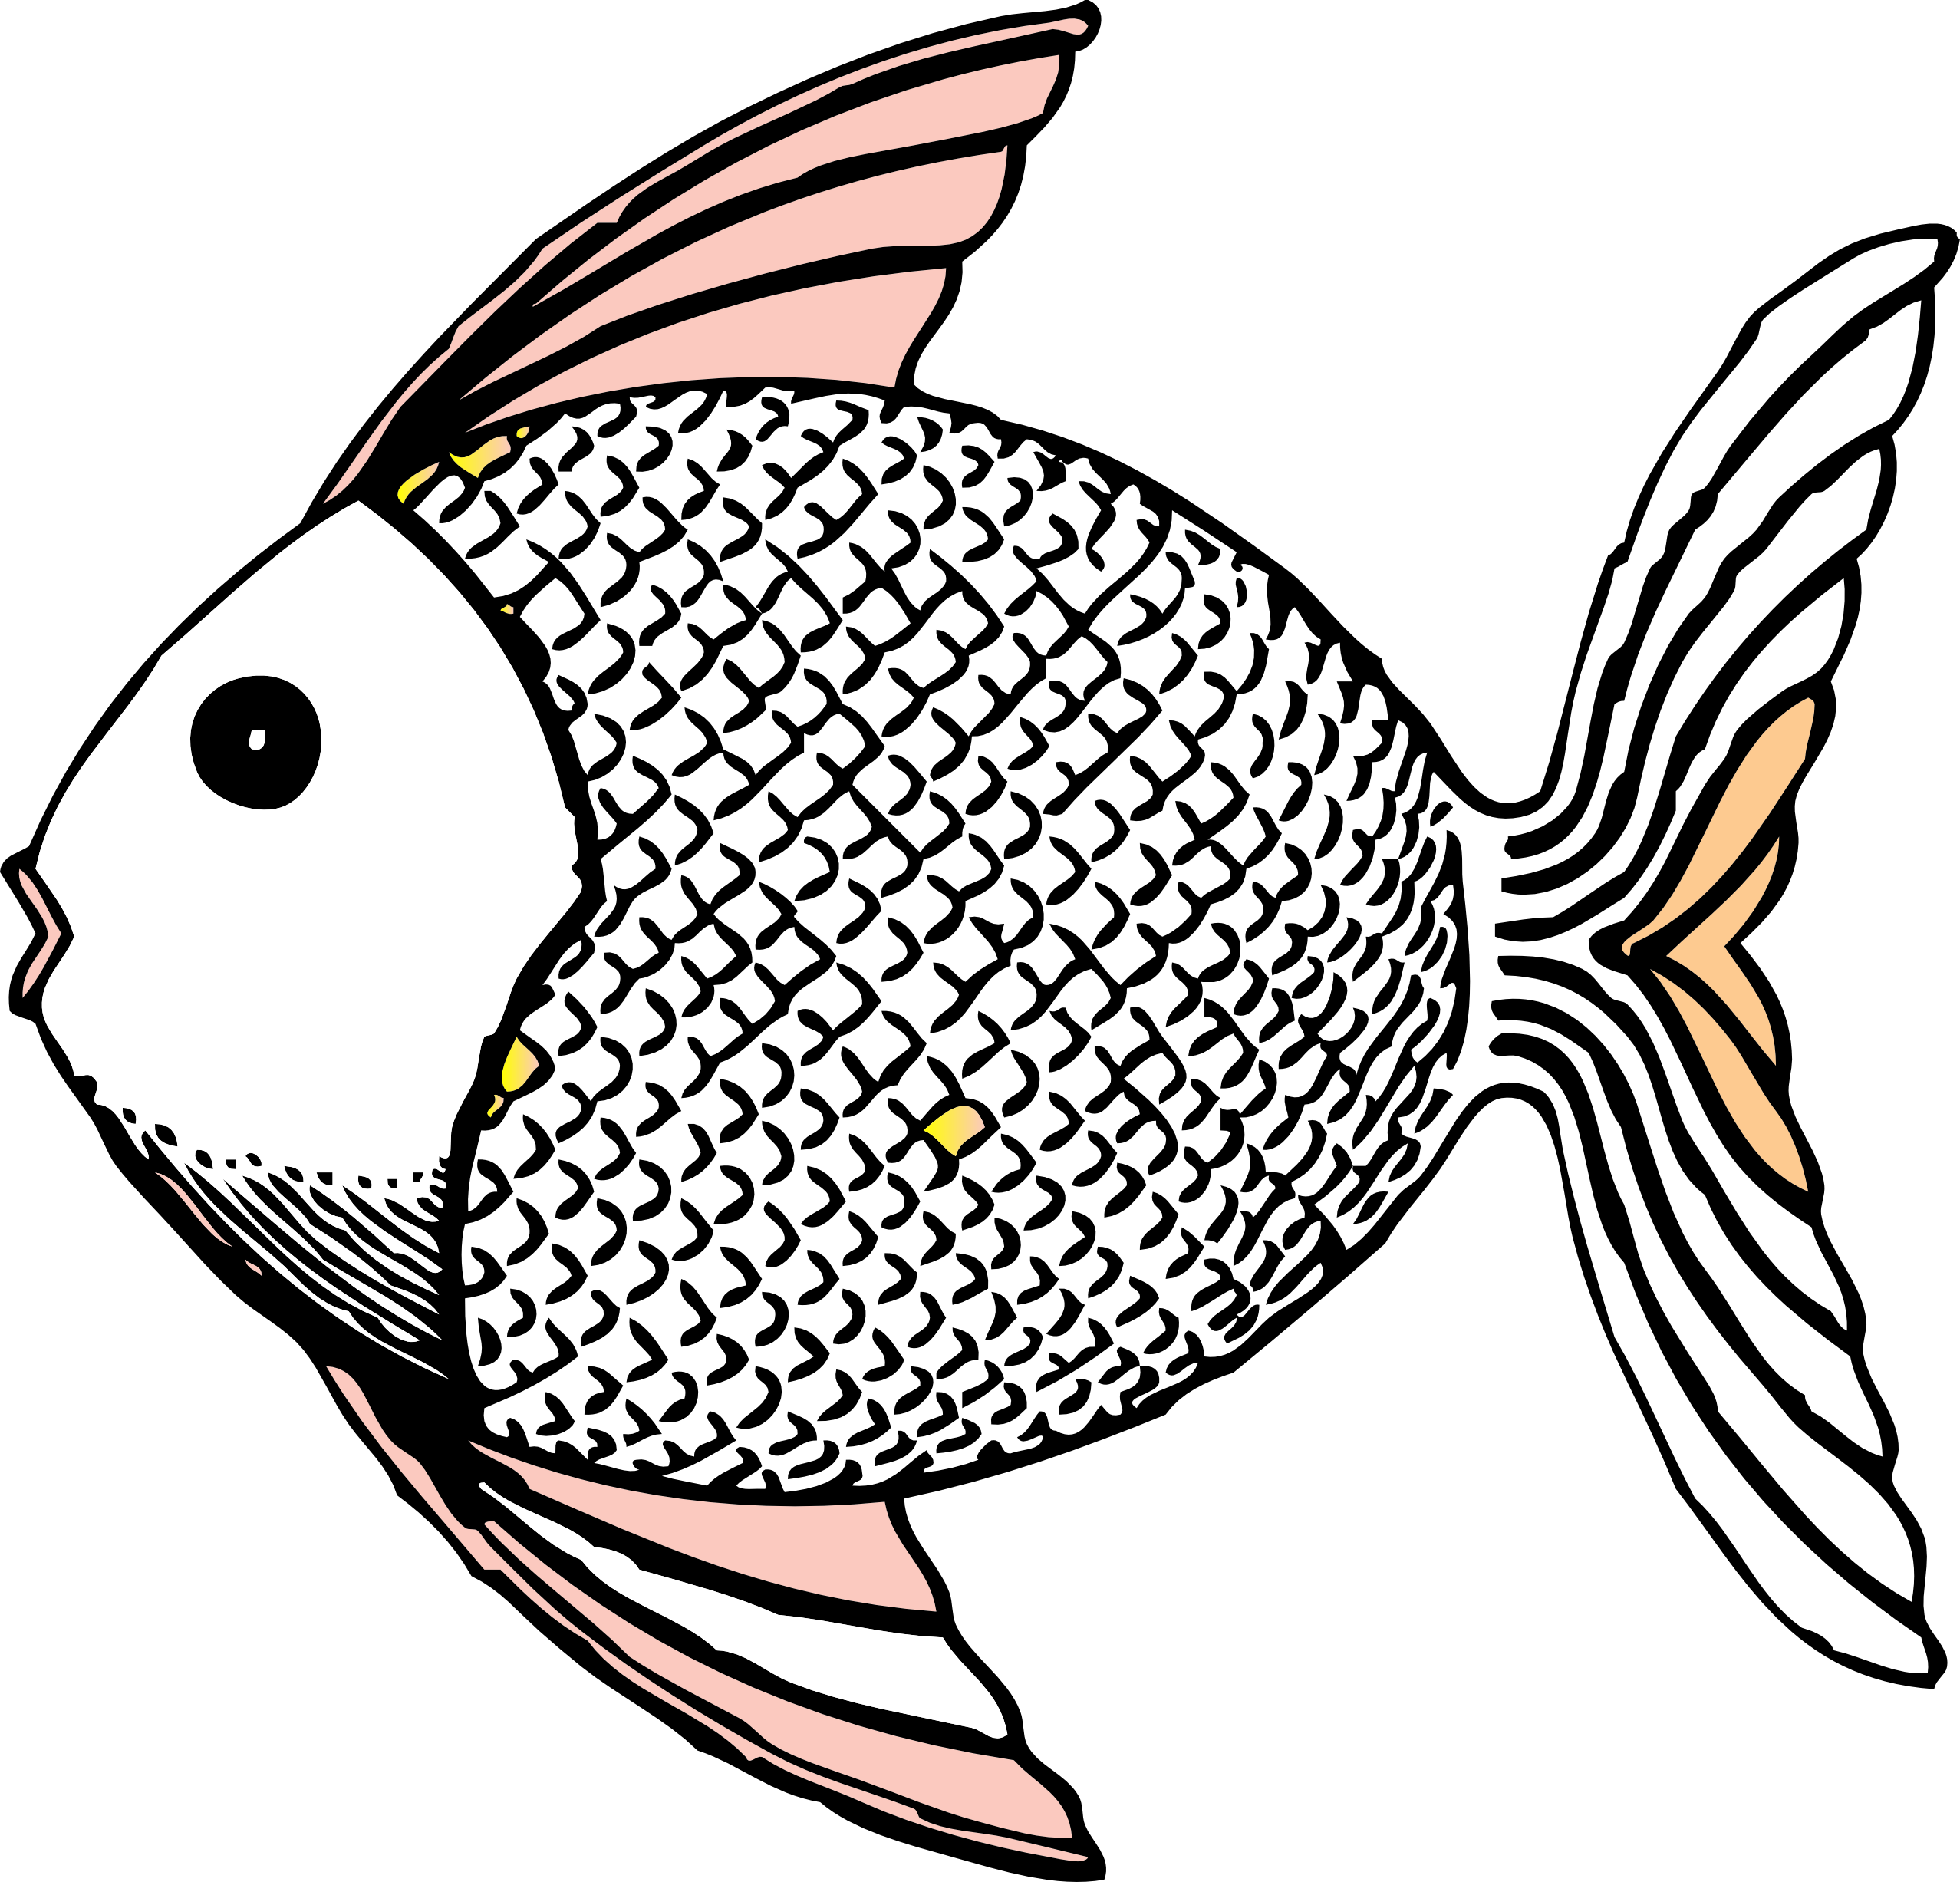 Big fish eating small fish clipart freeuse library Fish Clip Art Black and White | tropical fish black white line art ... freeuse library